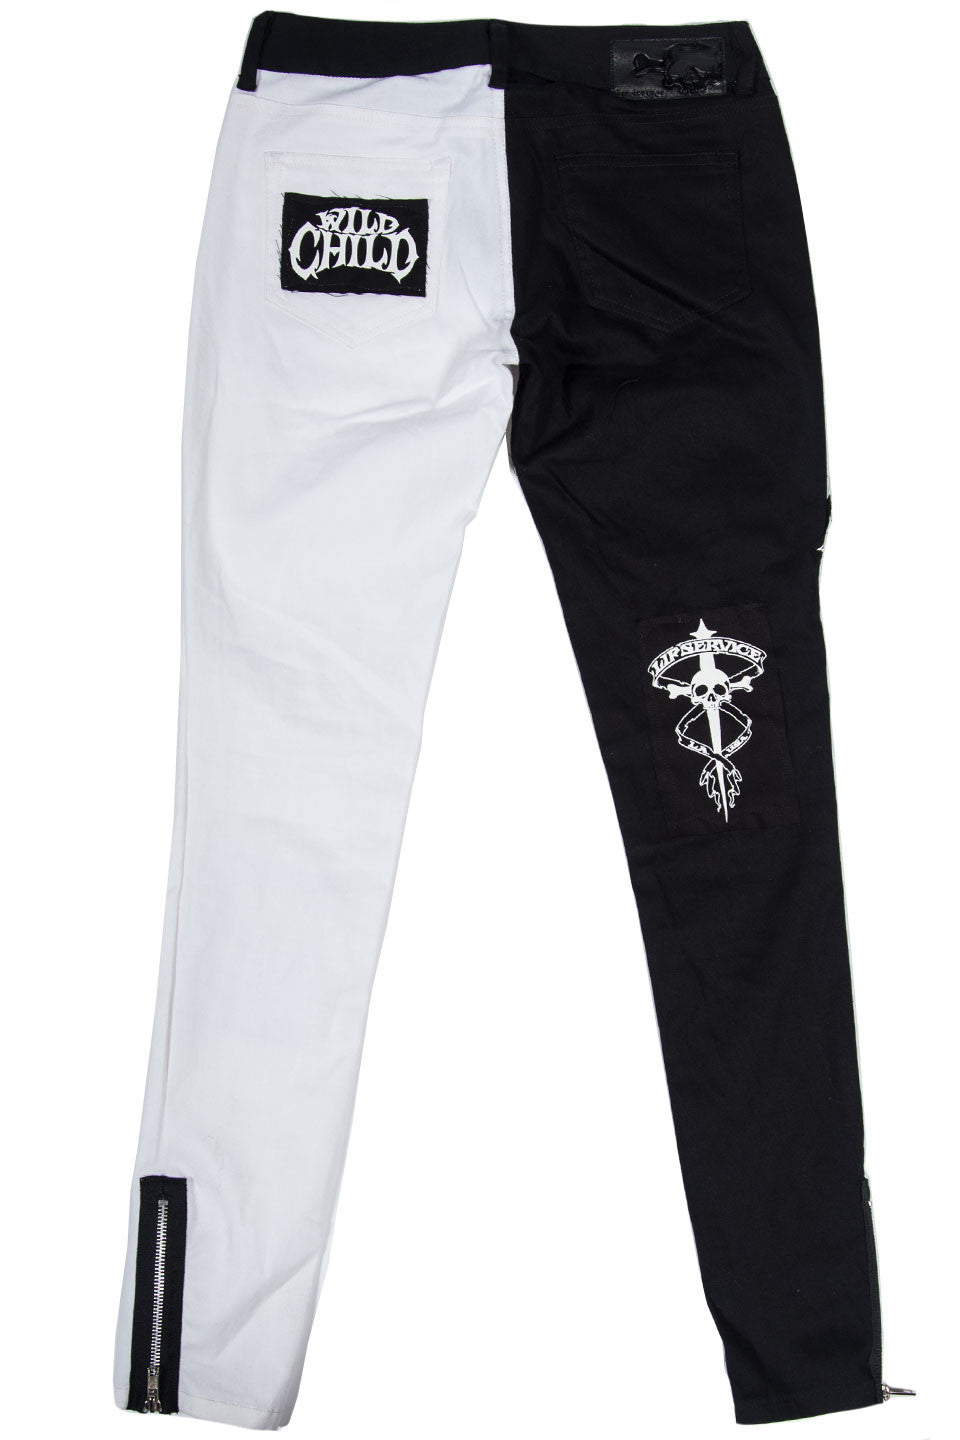 Vintage Punk & Disorderly Patch Jean-Bottoms-Lip Service